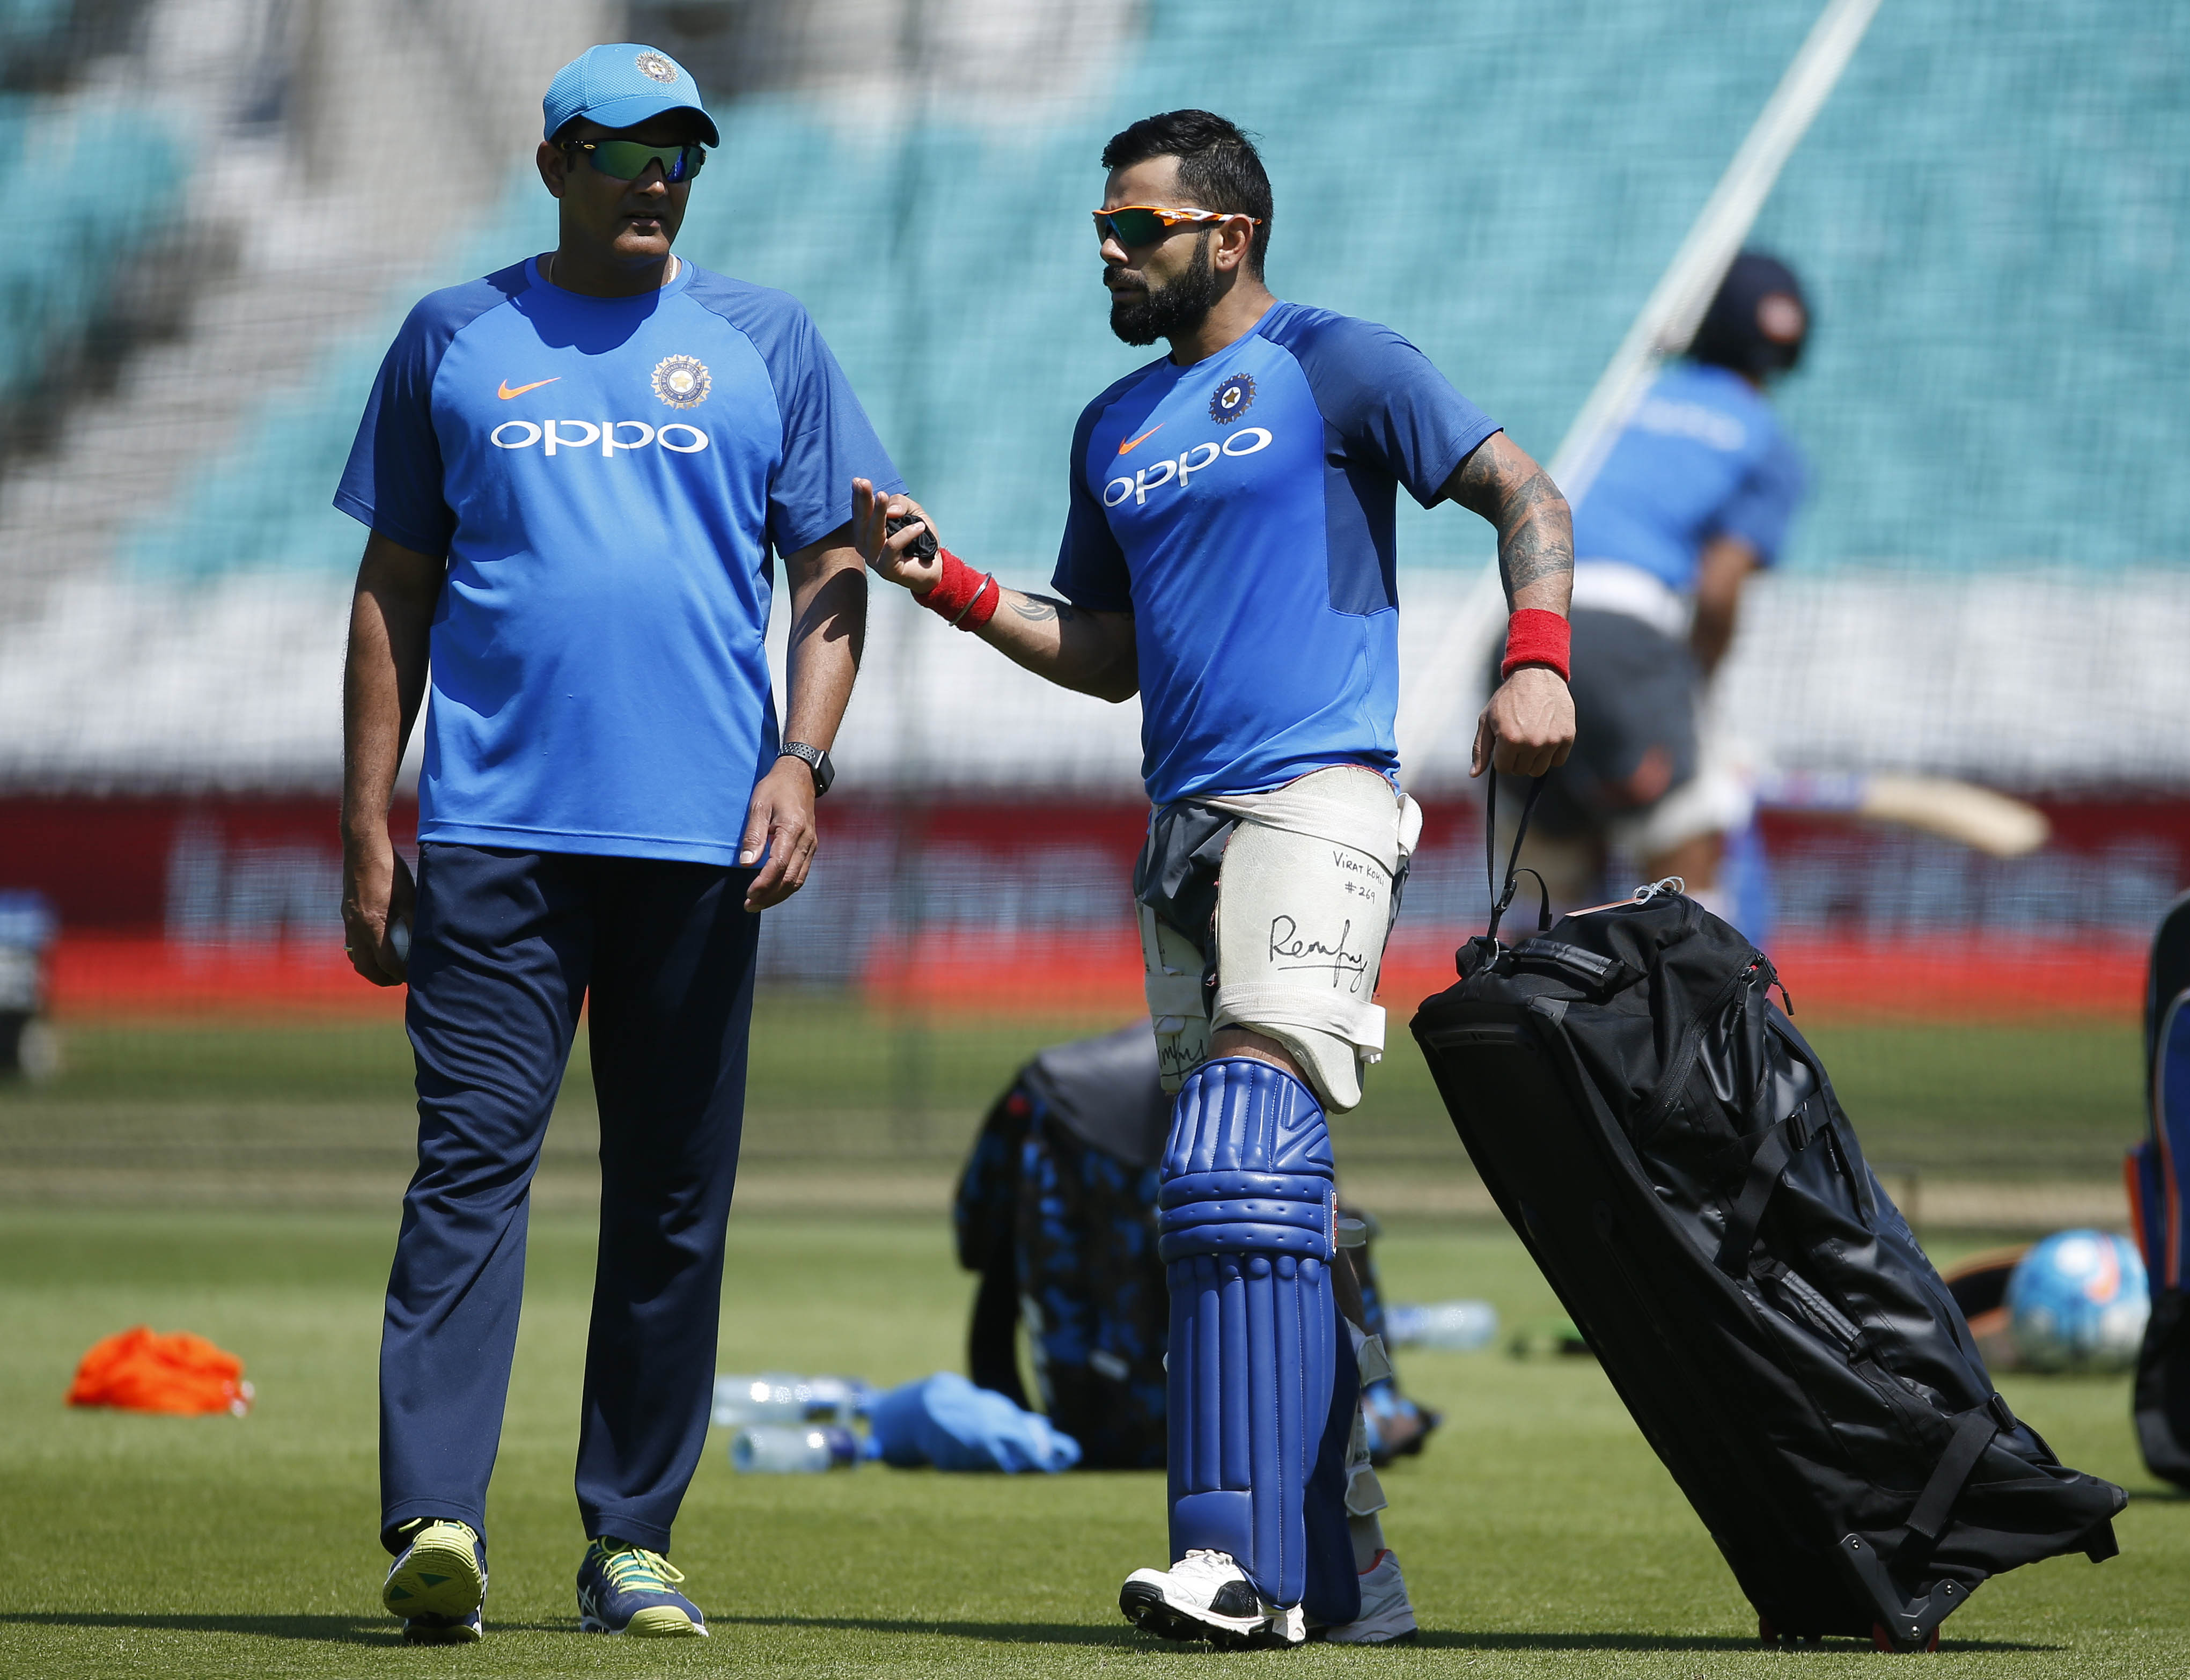 Cricket: Anil Kumble quits as India coach